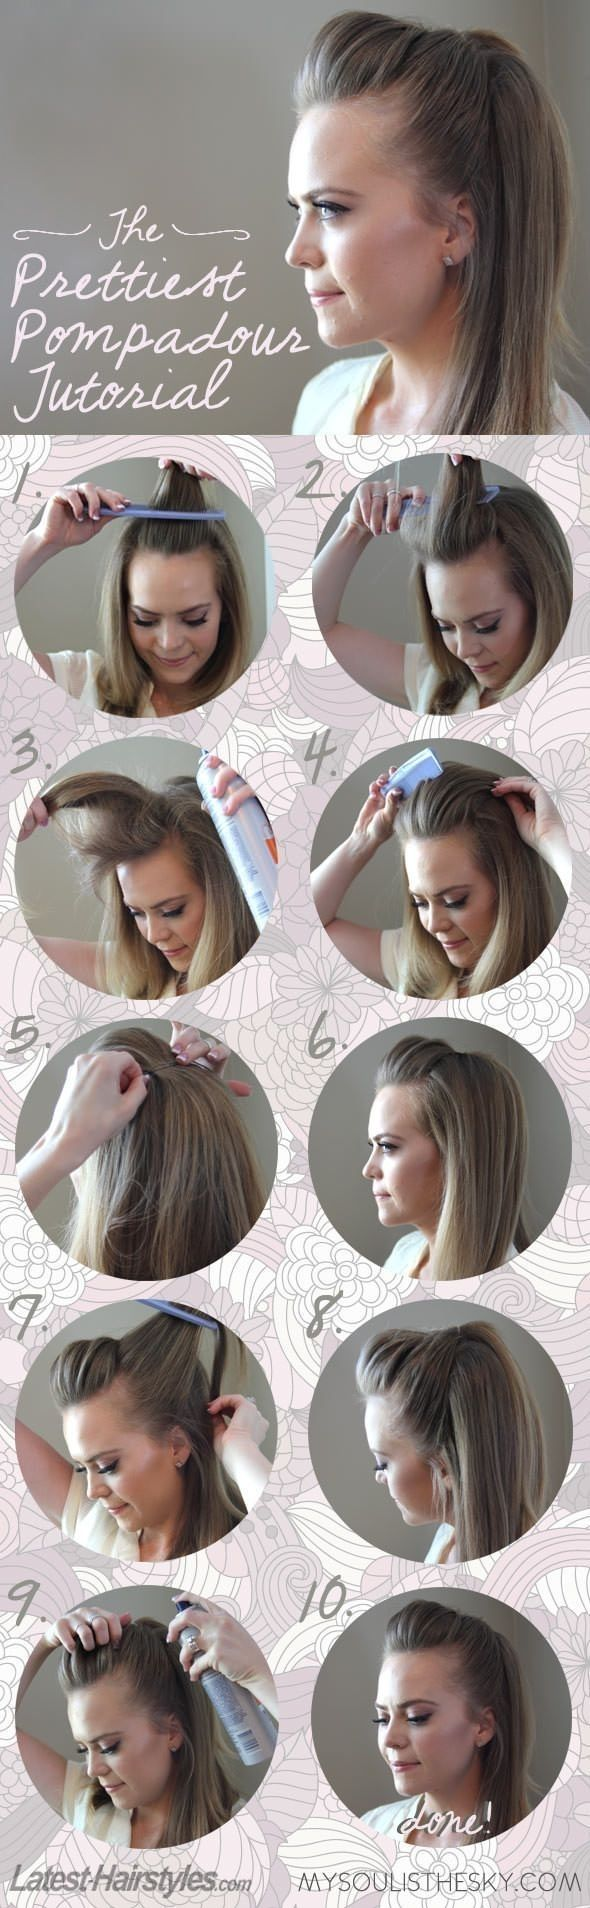 23 Gorgeous Hairstyle Ideas and Tutorials that can be done in 10 minutes